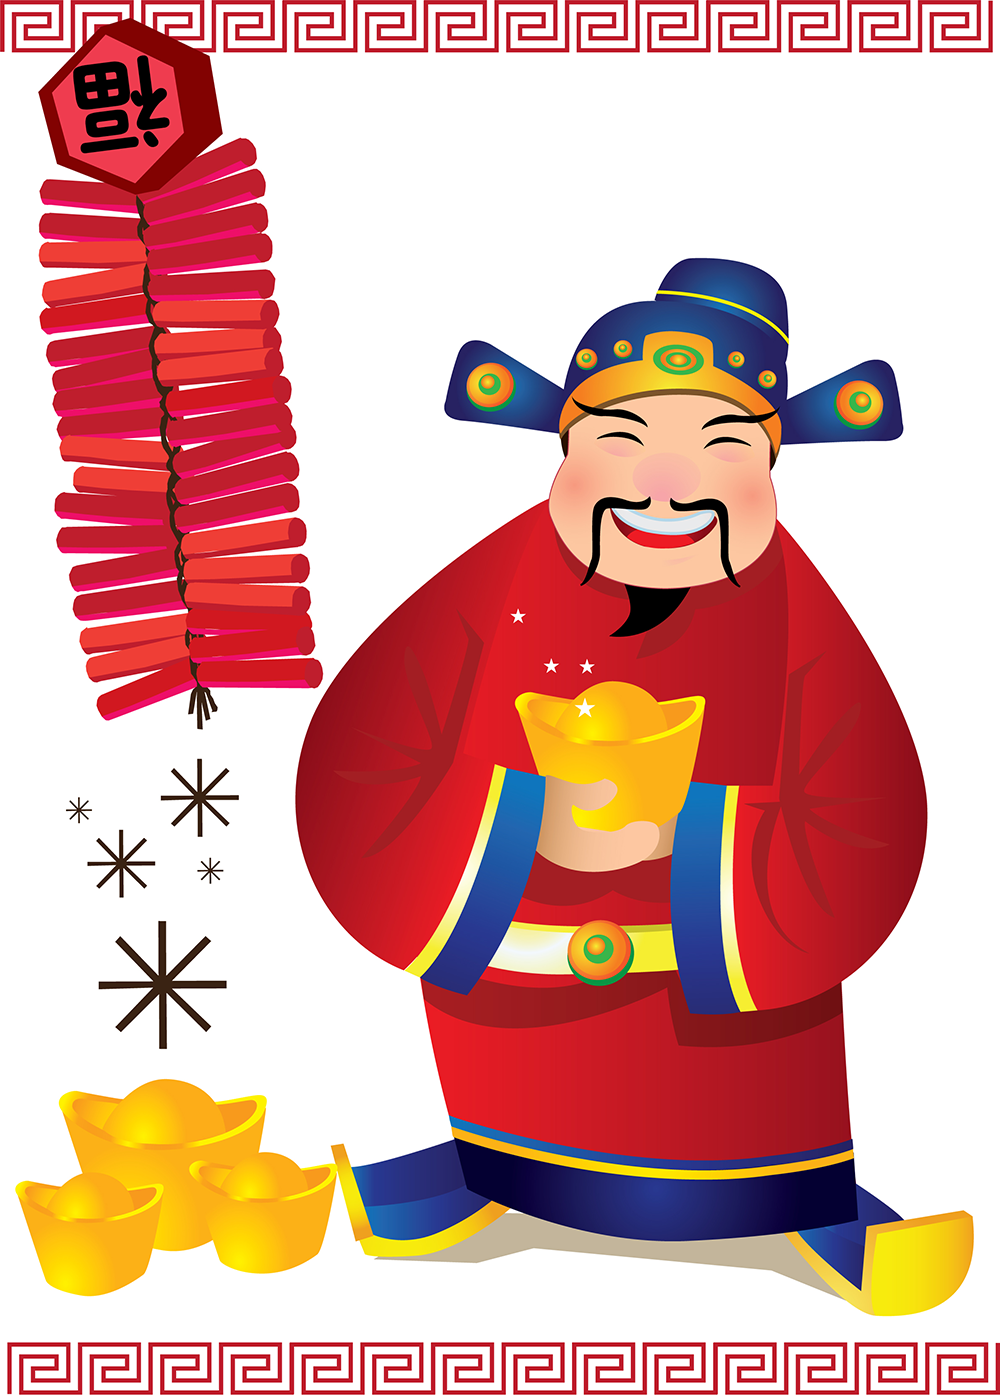 Caishen - Chinese God of Wealth.